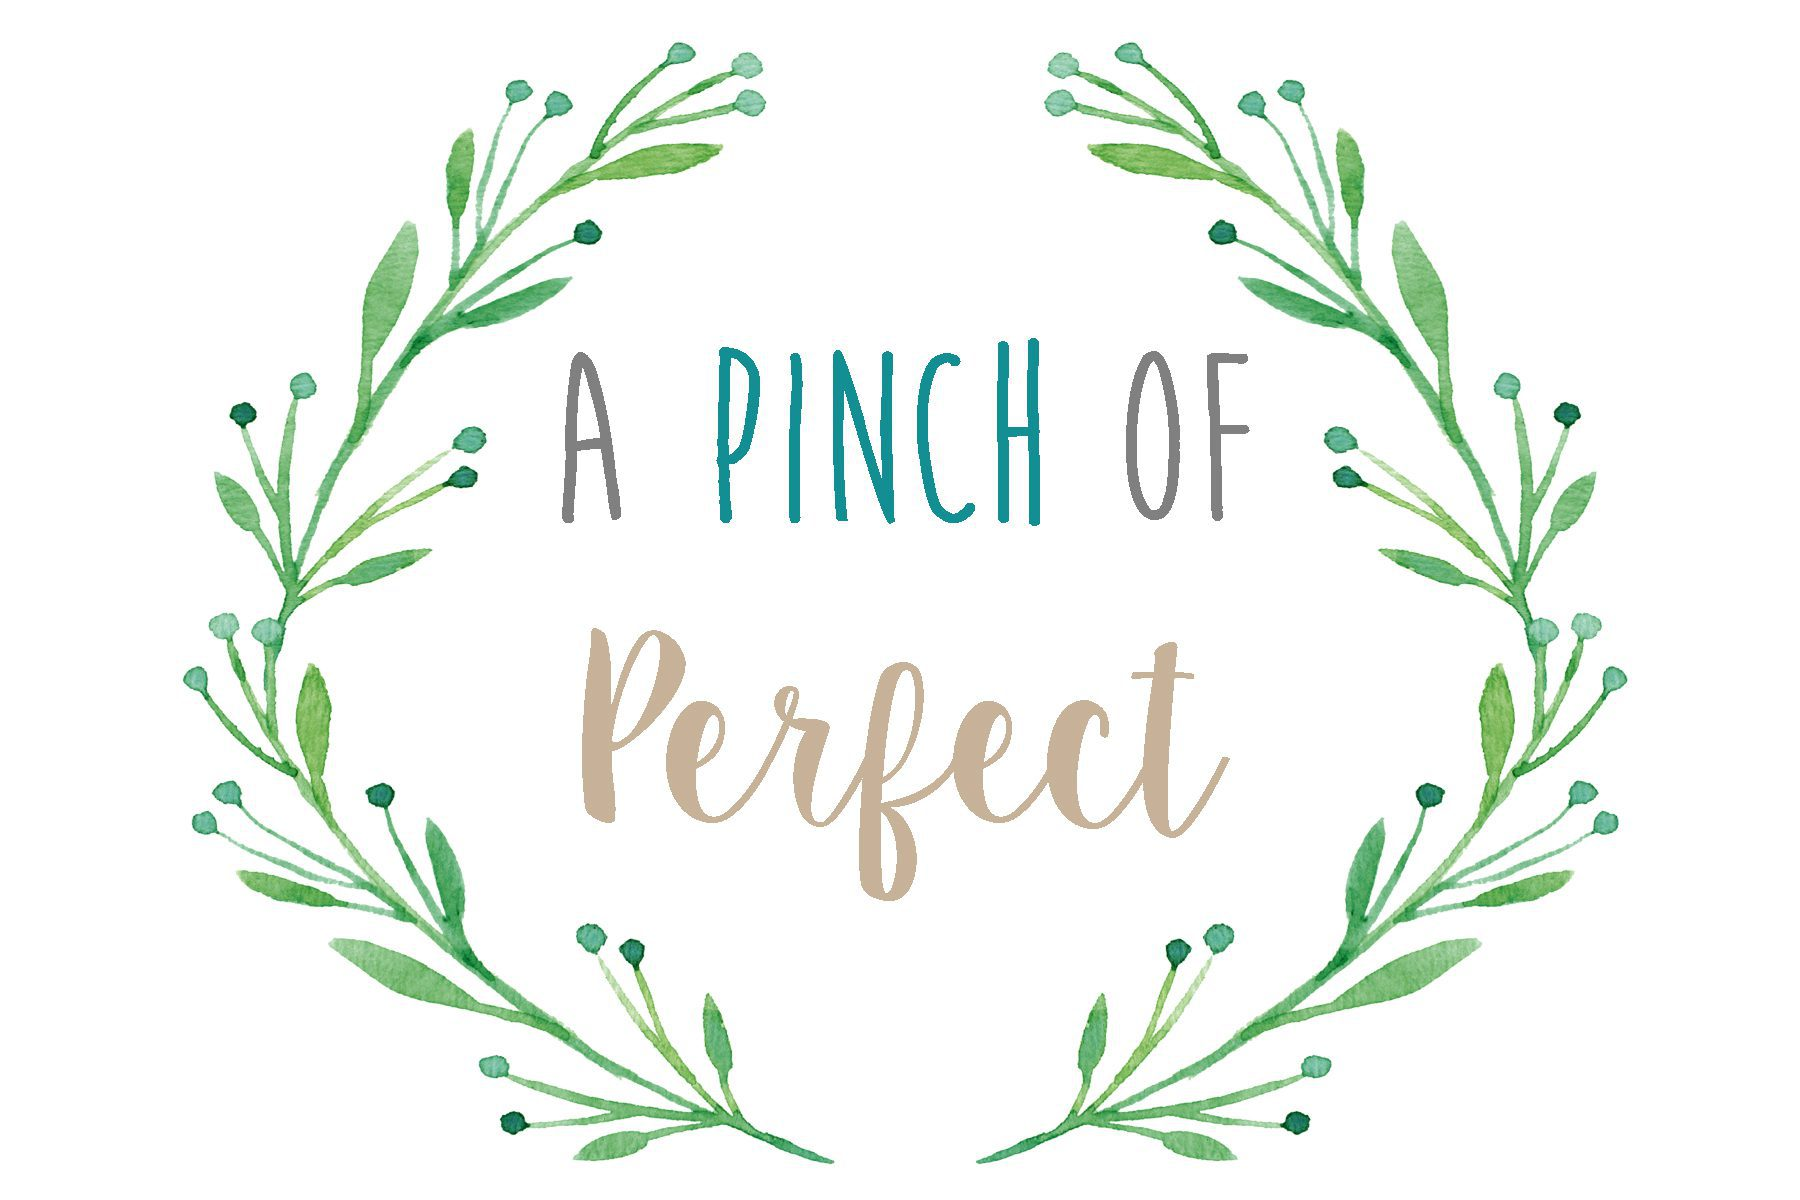 A Pinch of Perfect